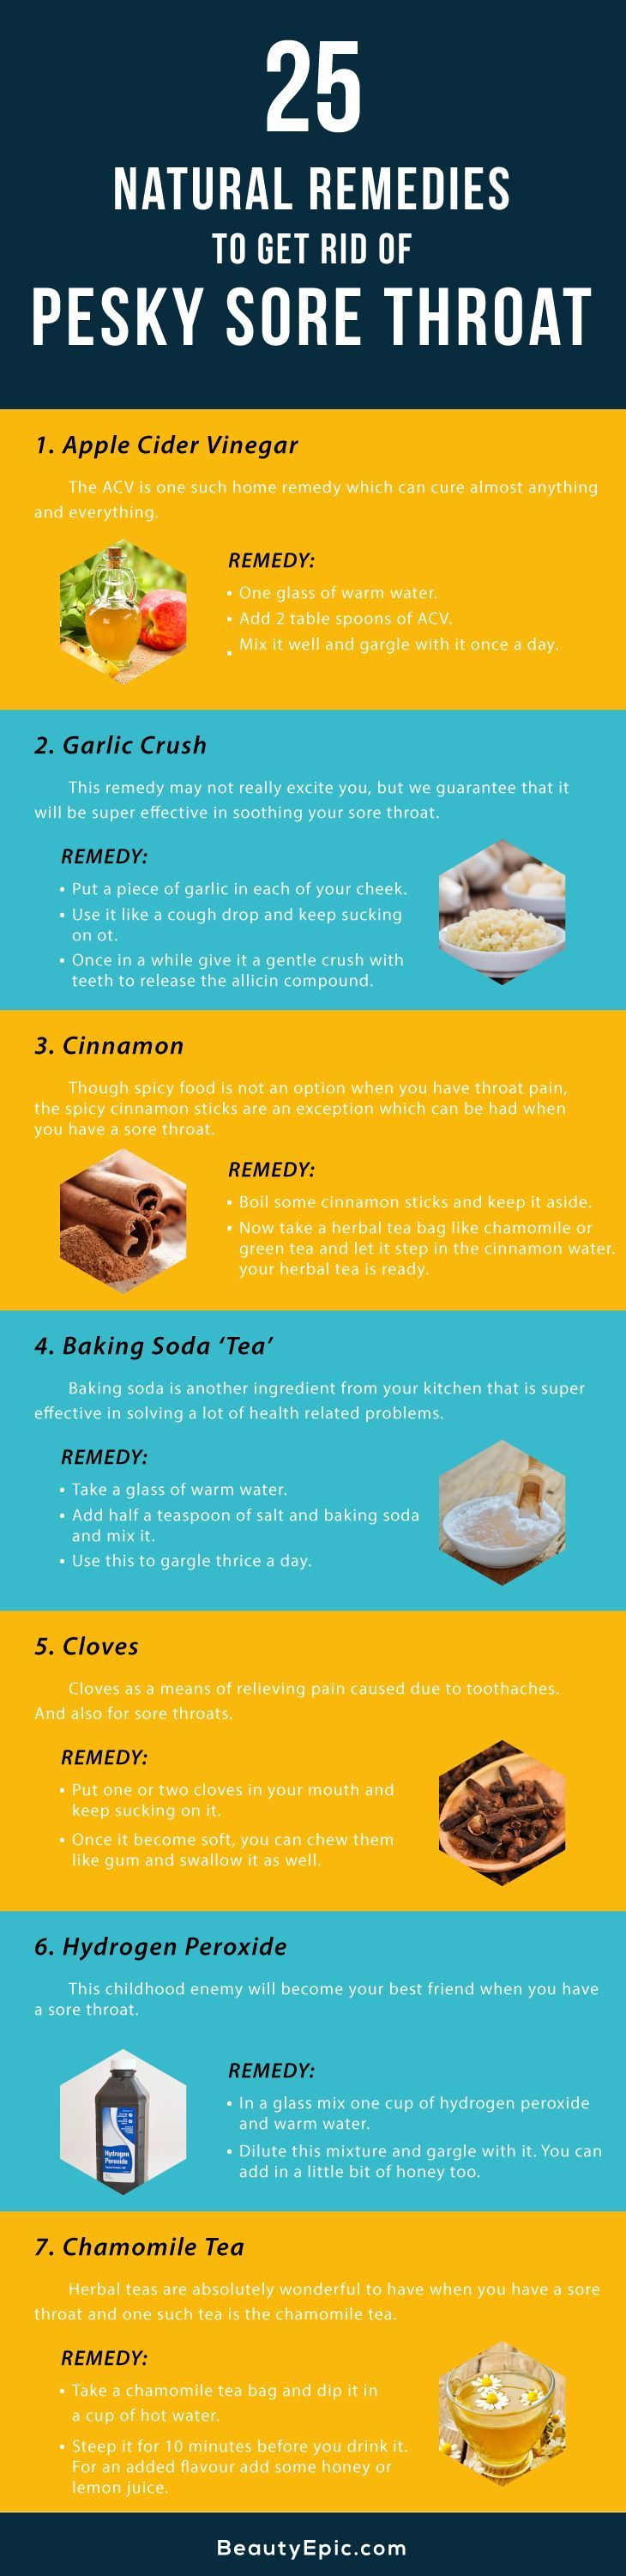 1434 best Health ..Remedies etc images on Pinterest | Natural ...